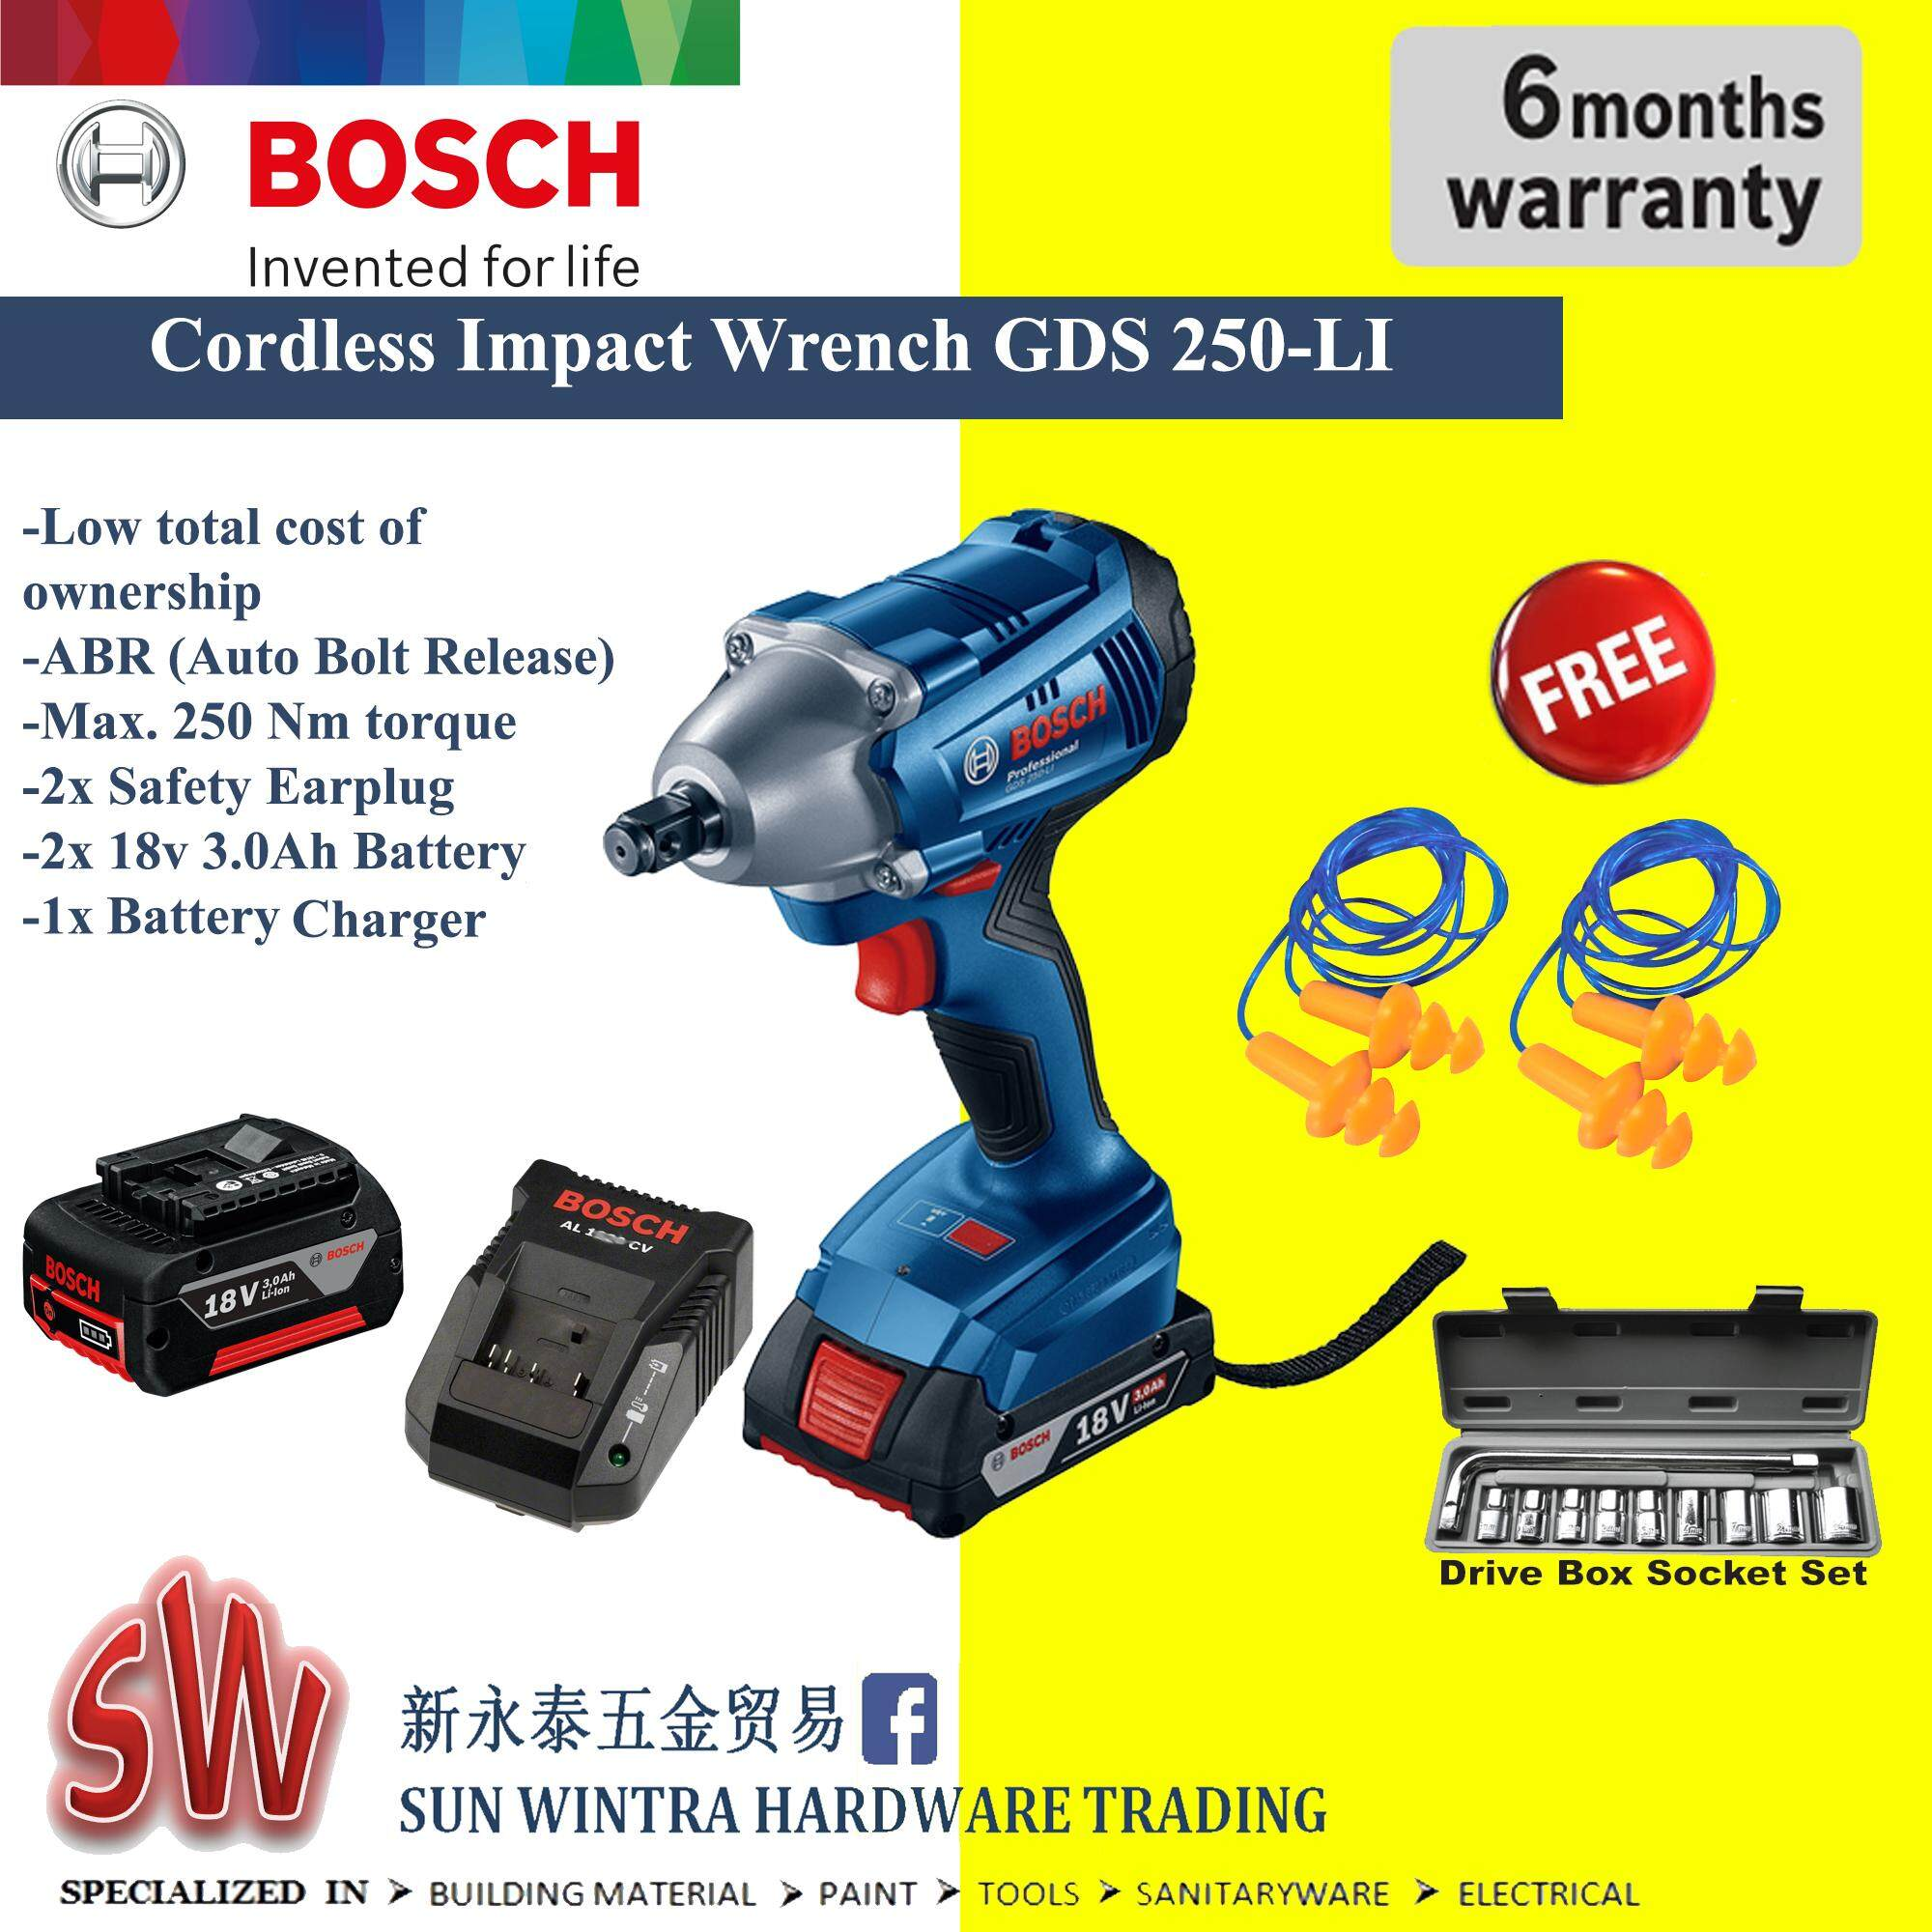 Bosch Cordless Impact Wrench GDS 250-LI Professional F.O.C BOX SOCKET SET